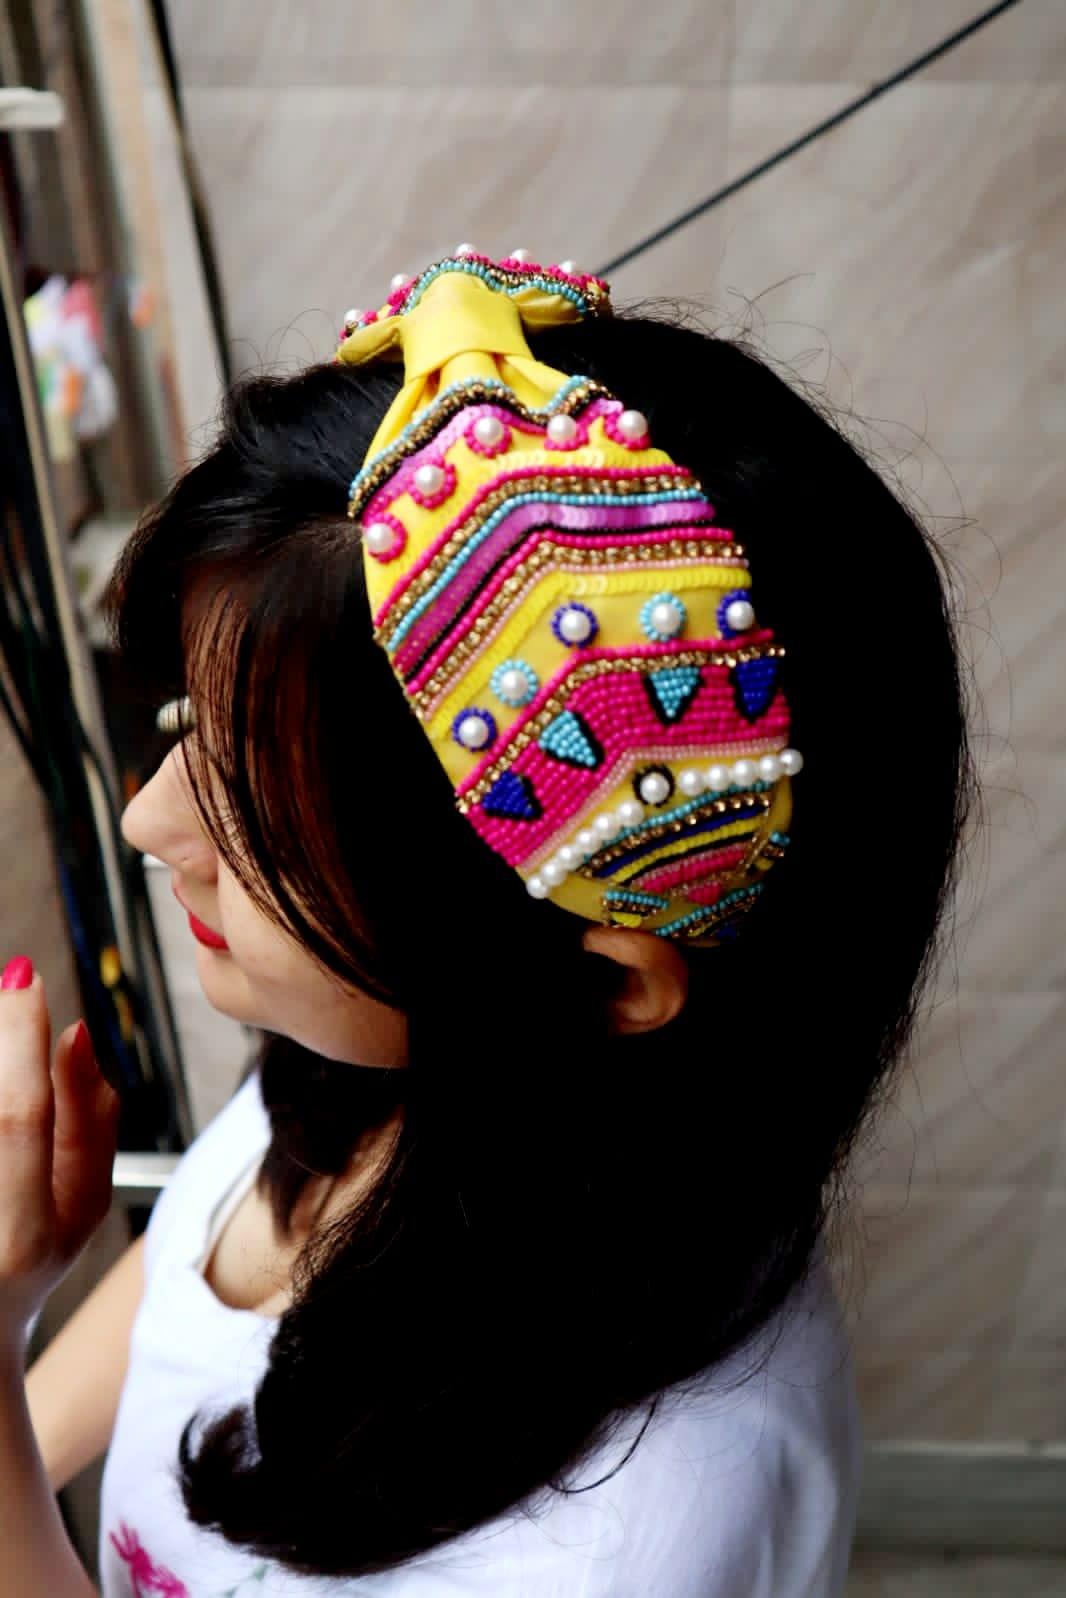 Trending Handmade Embroidery Headband Funky style Beads, Sequins,And Embellished, Turban Boho Style Broad Hairband, for Kids/ Girls /women